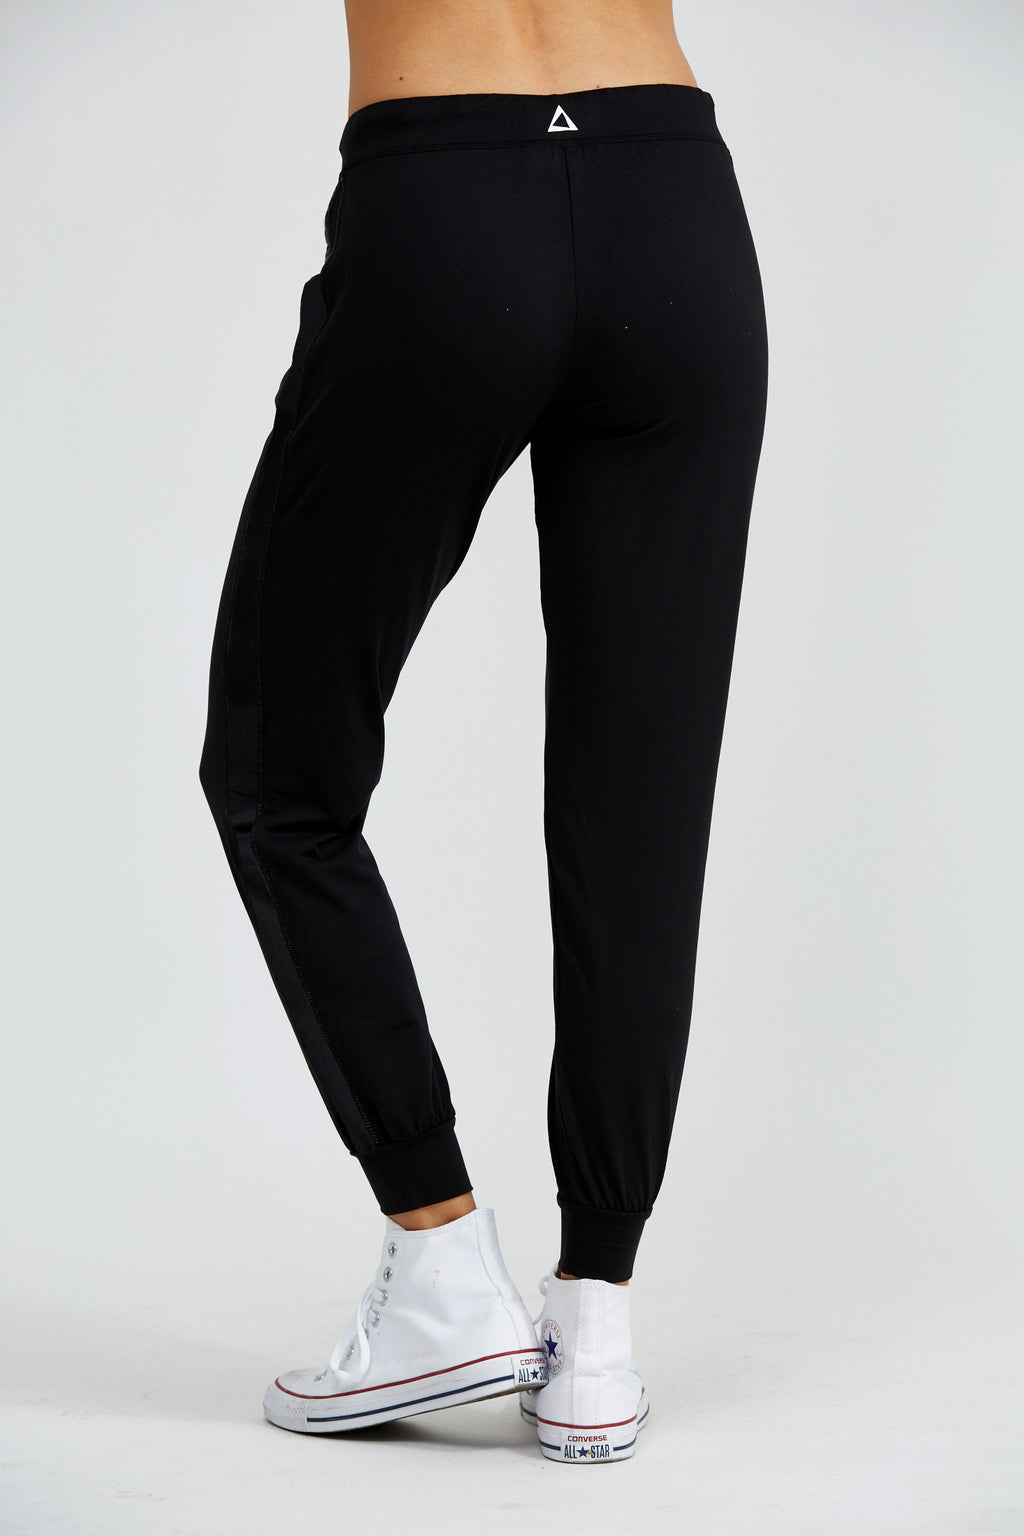 PRISMSPORT Urban Track Pant with Black Stripe